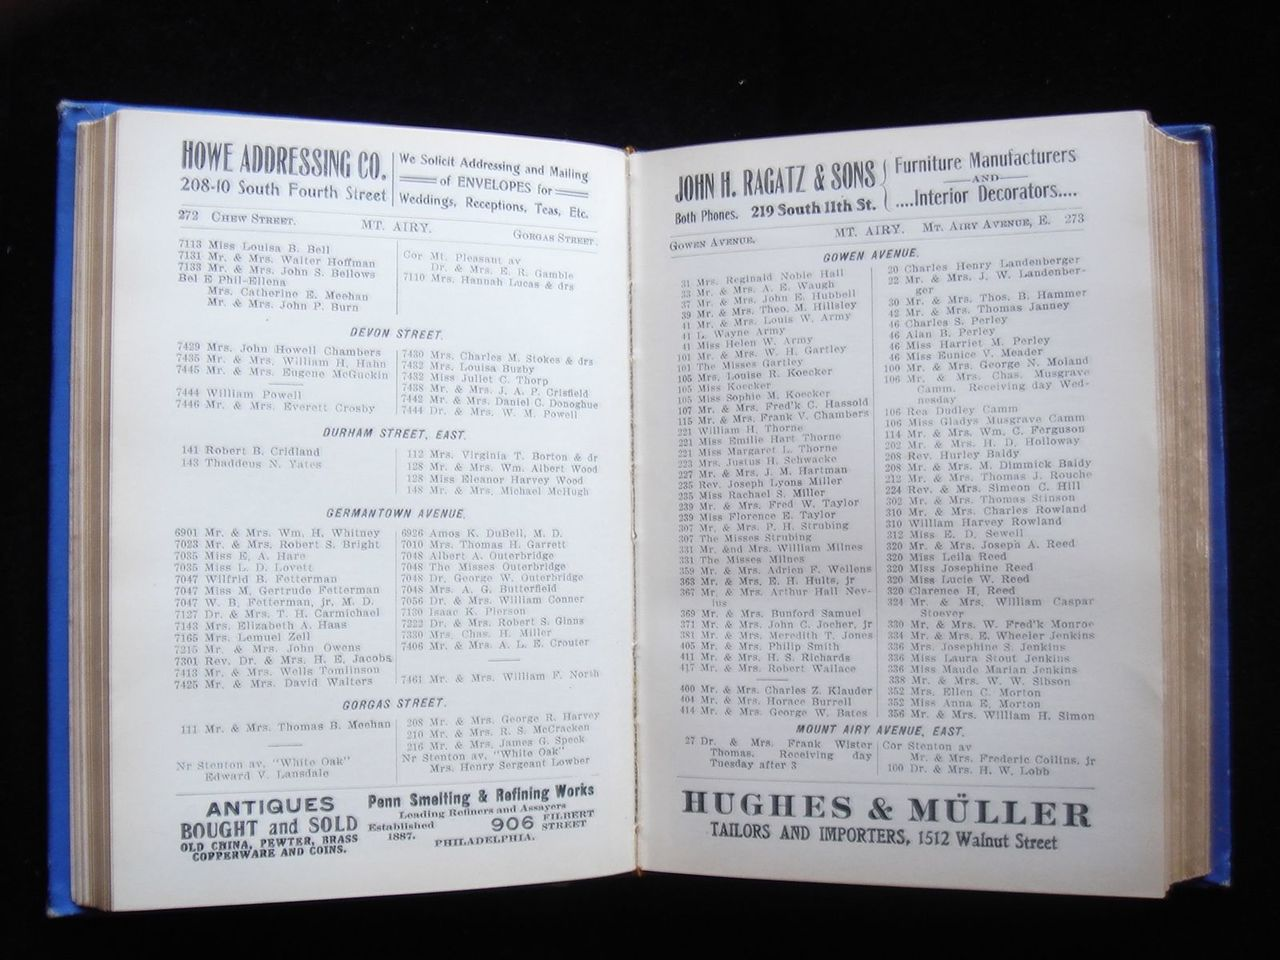 BOYD'S PHILADELPHIA BLUE BOOK, Elite Directory - 1908